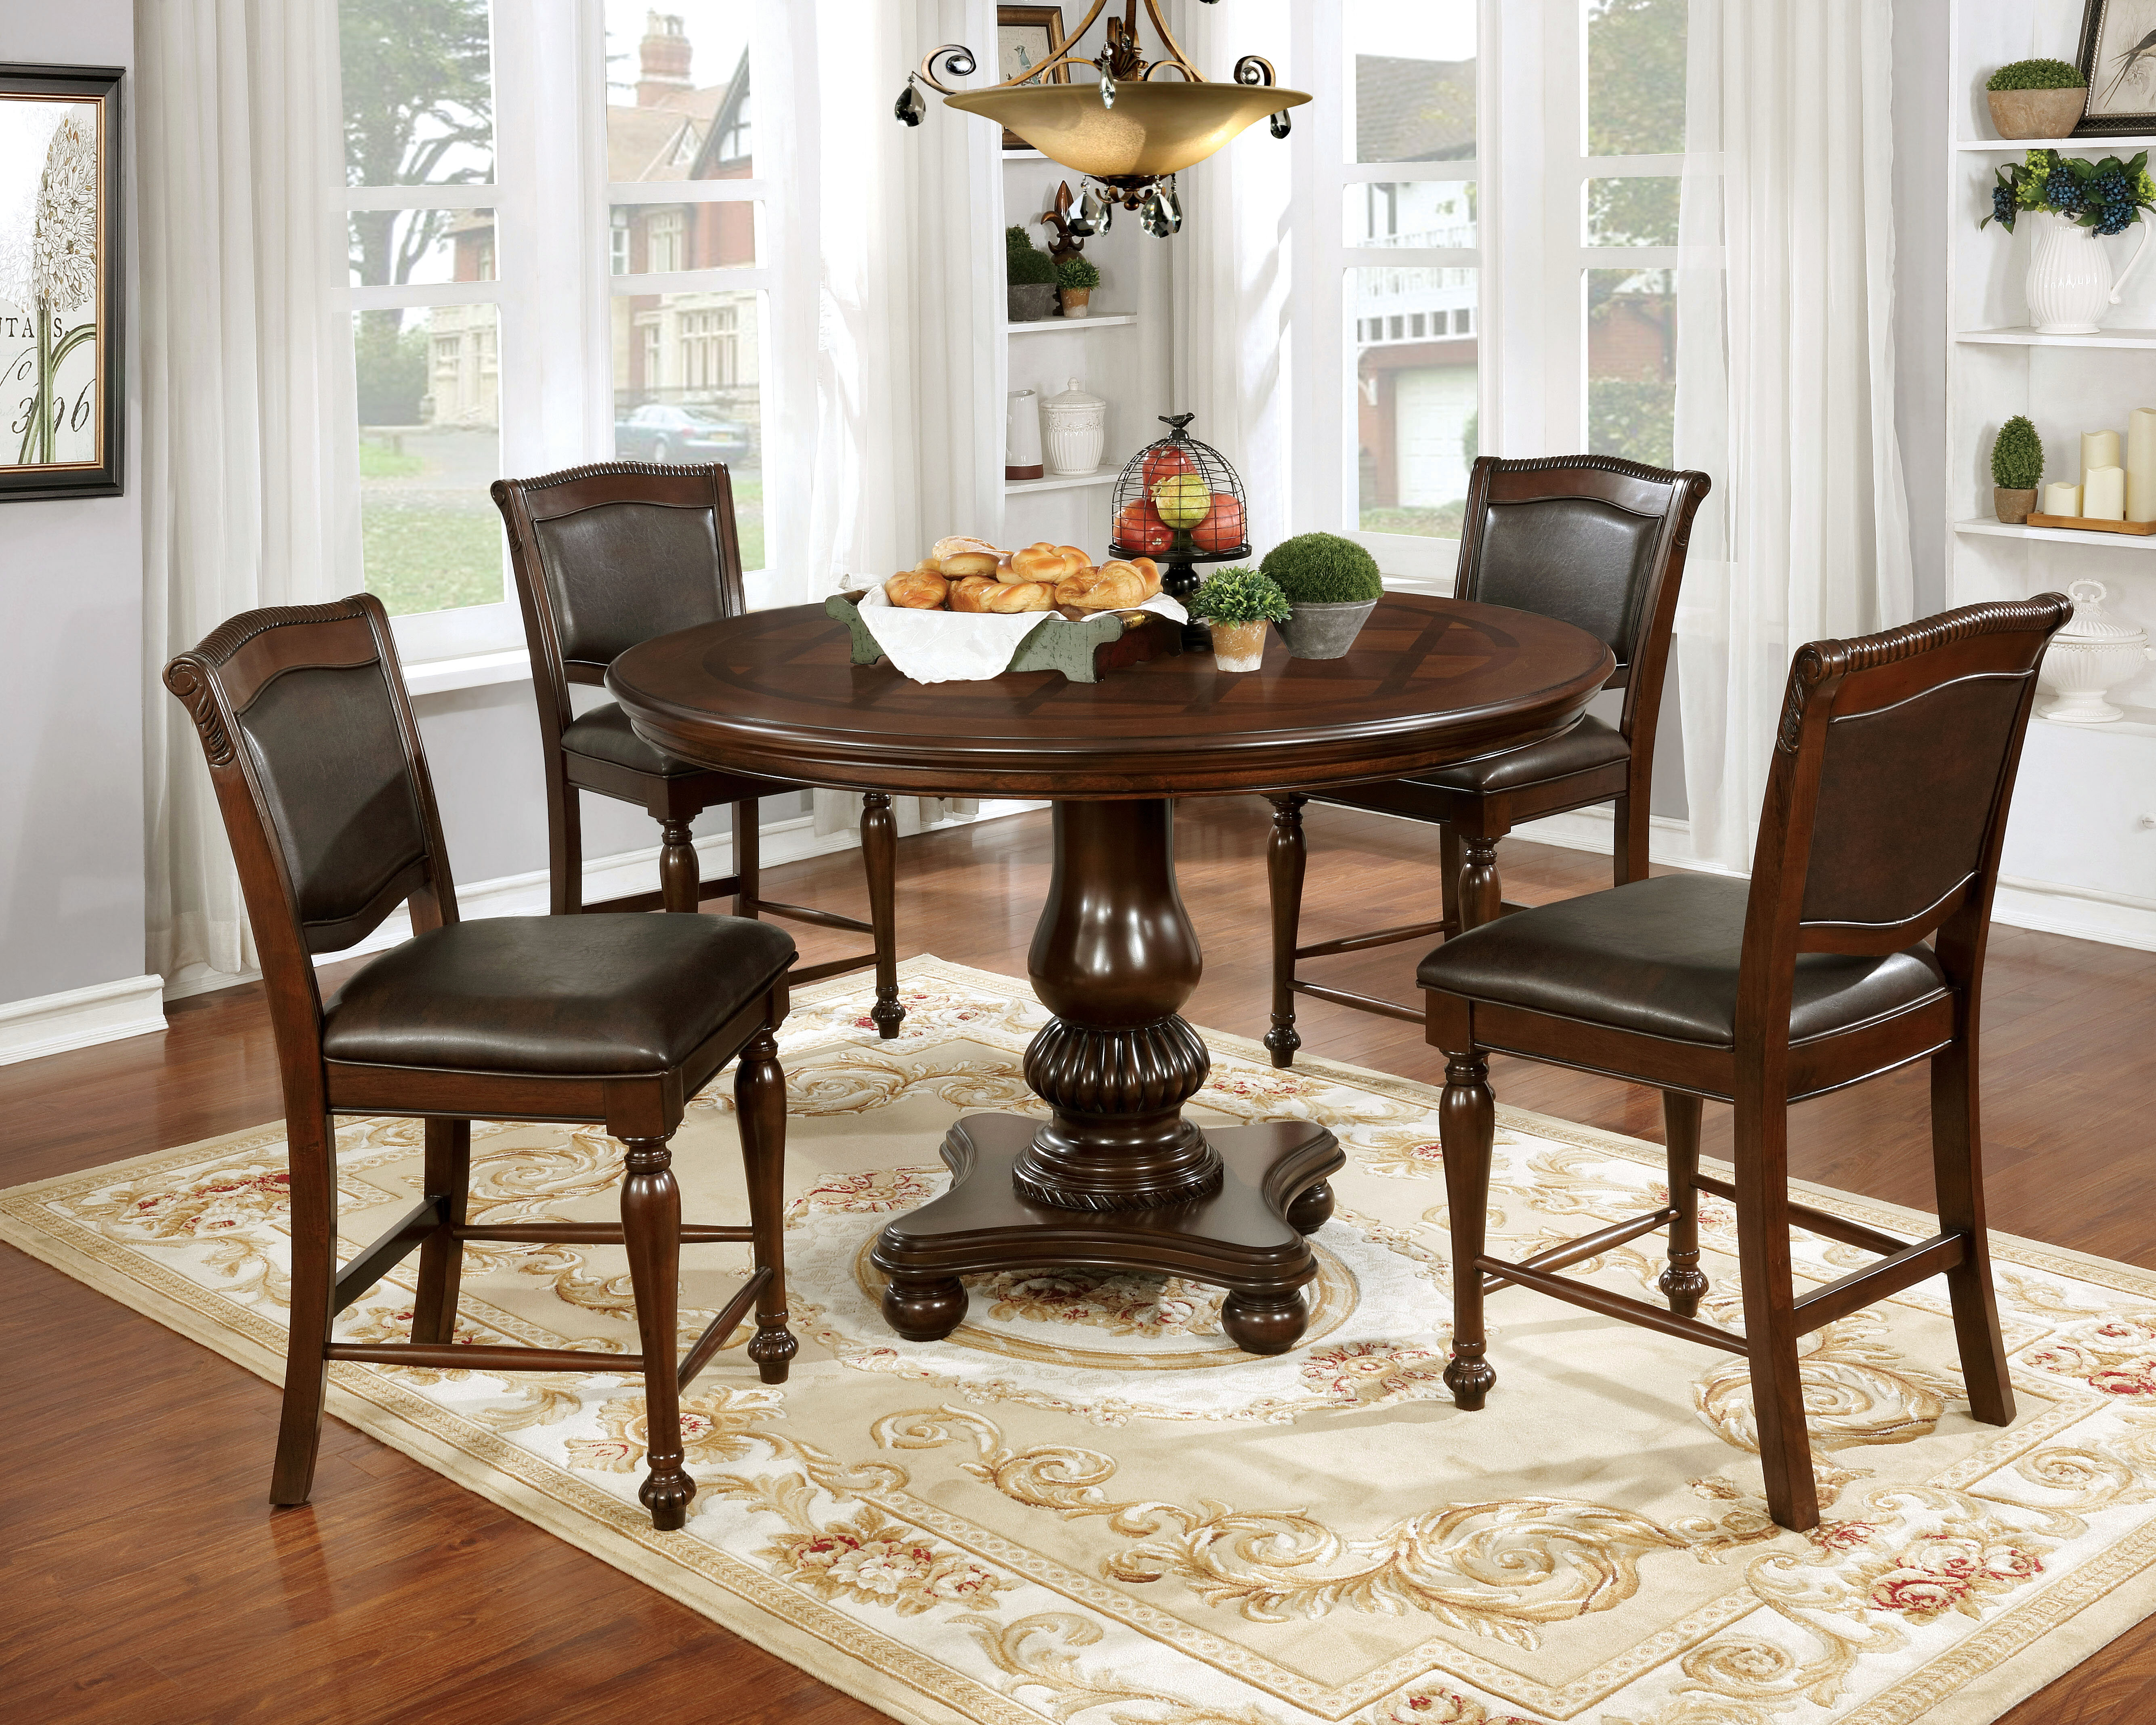 Astoria grand ripple traditional 5 piece dining table set wayfair